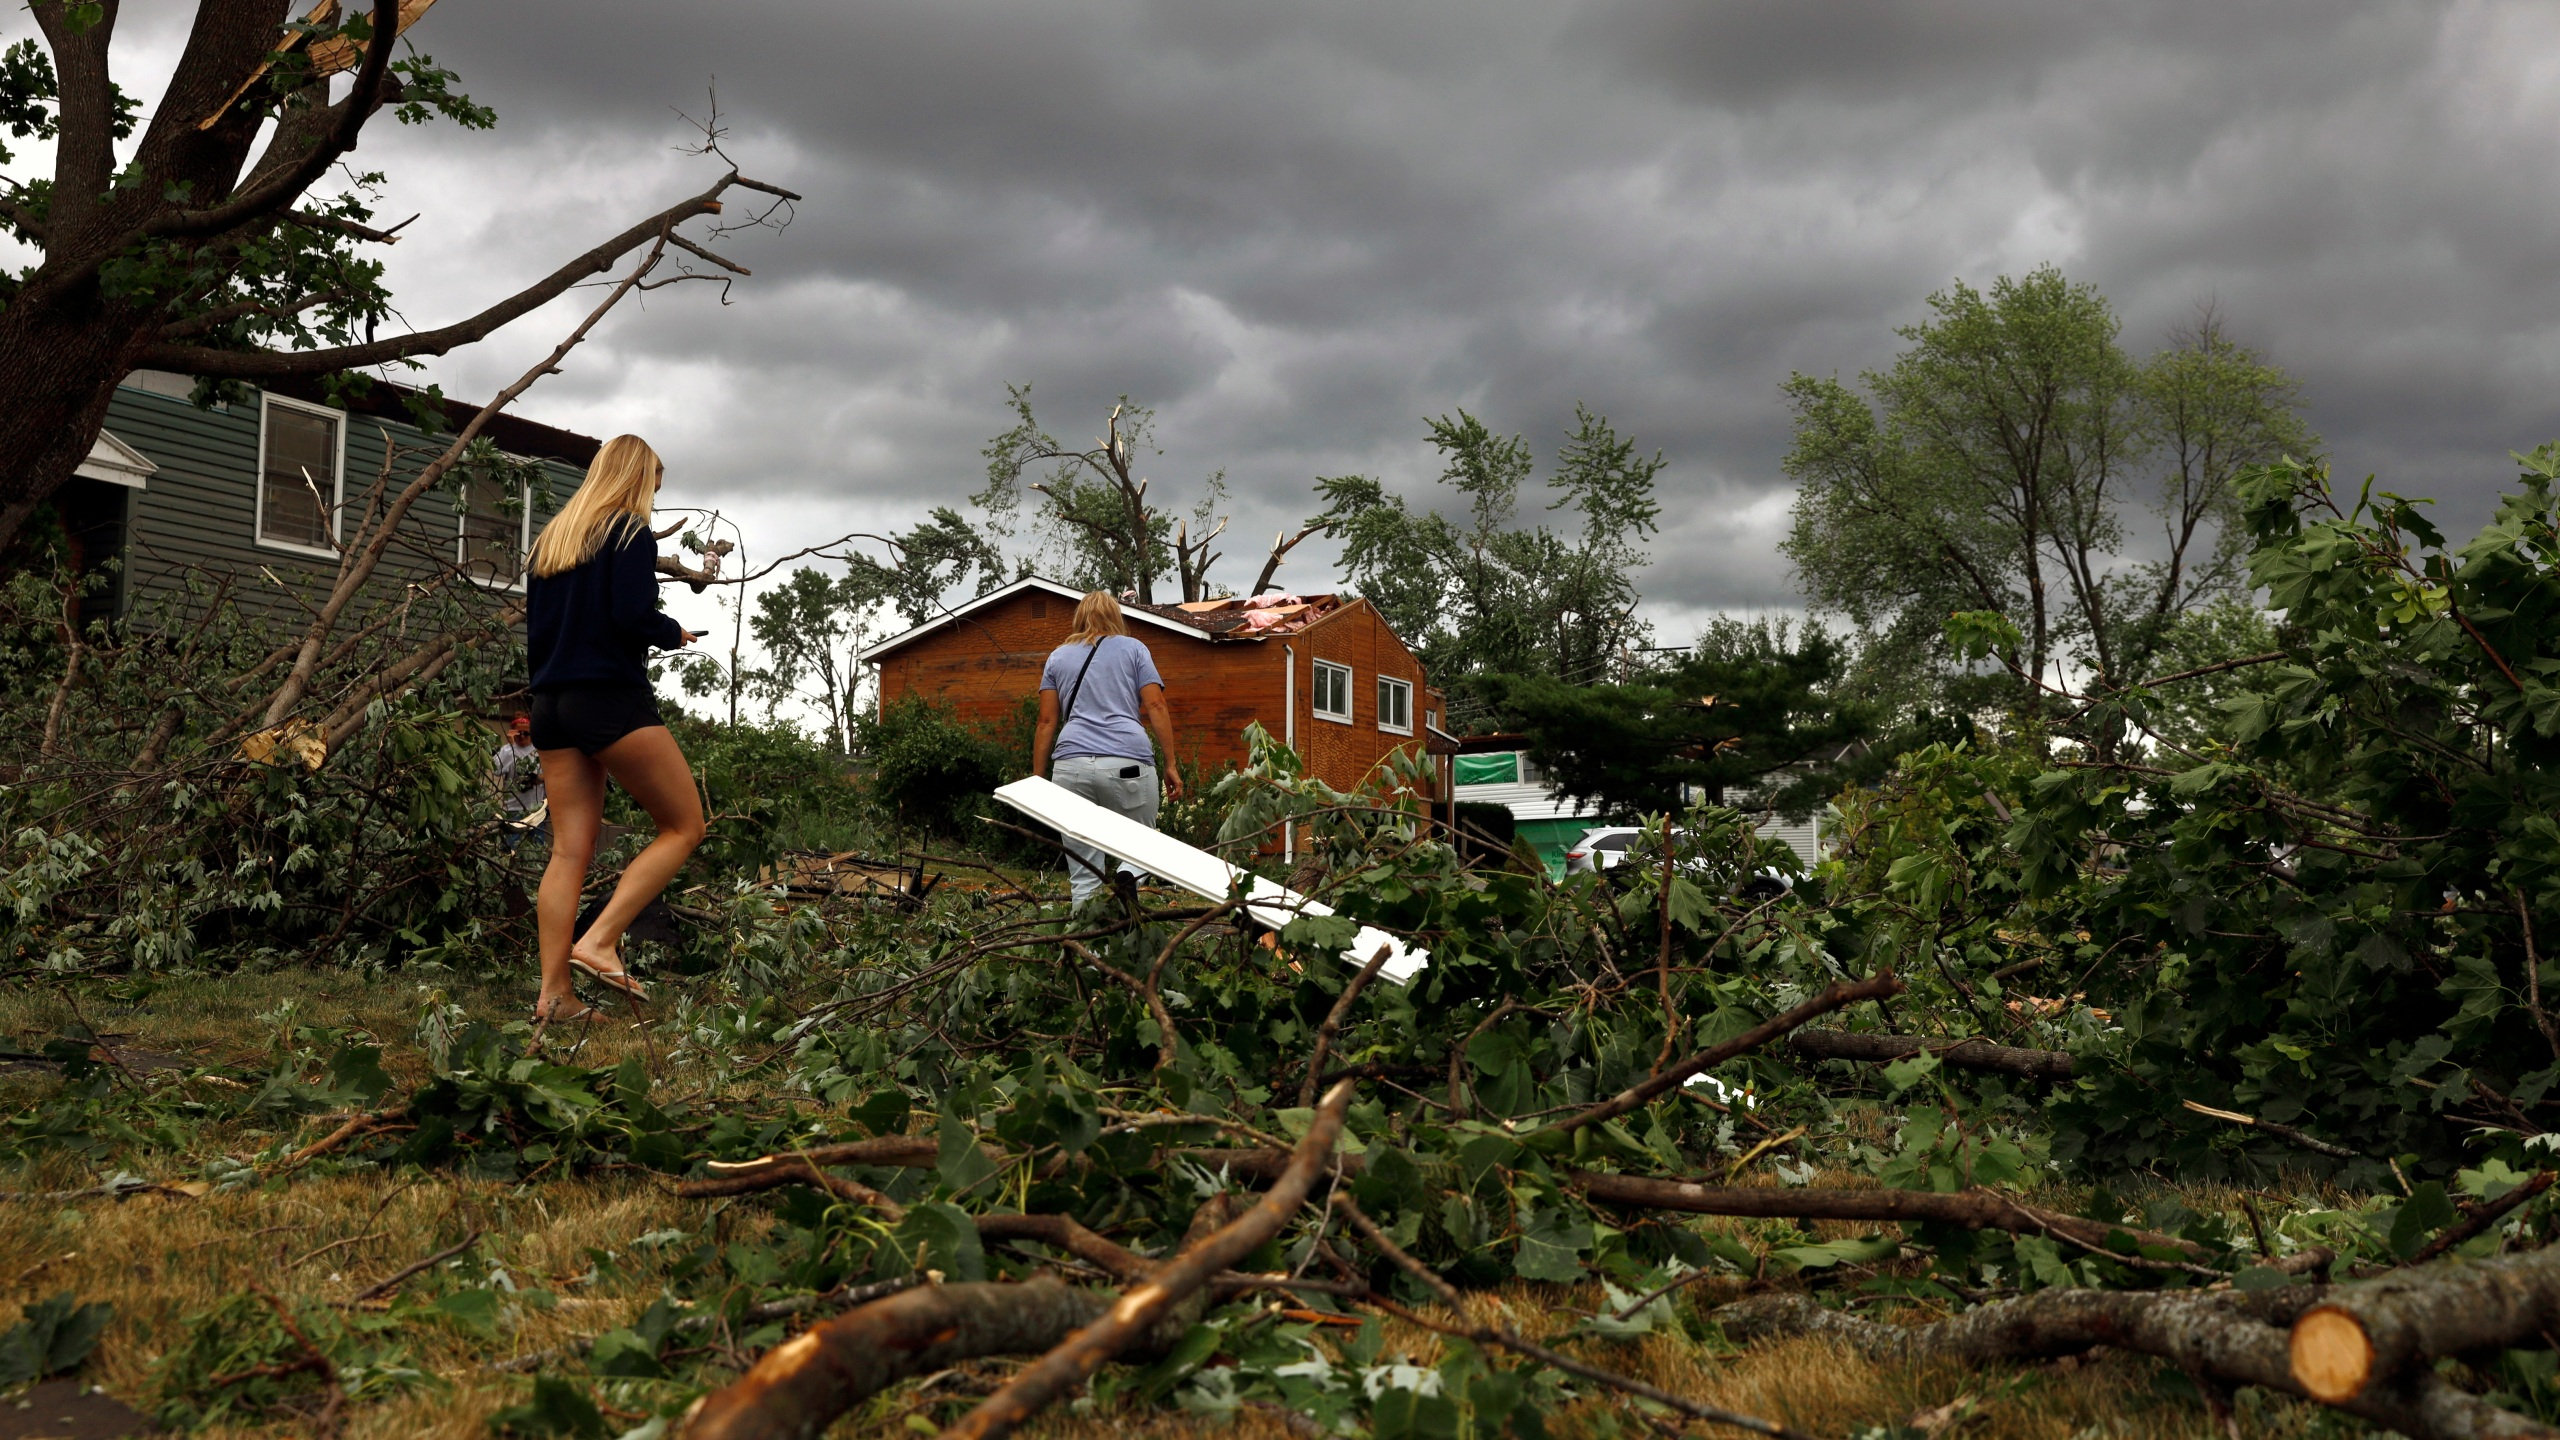 Residents walk past damaged houses and fallen trees after a tornado passed through the area on Monday, June 21, 2021 in Woodridge, Ill. (AP Photo/Shafkat Anowar)